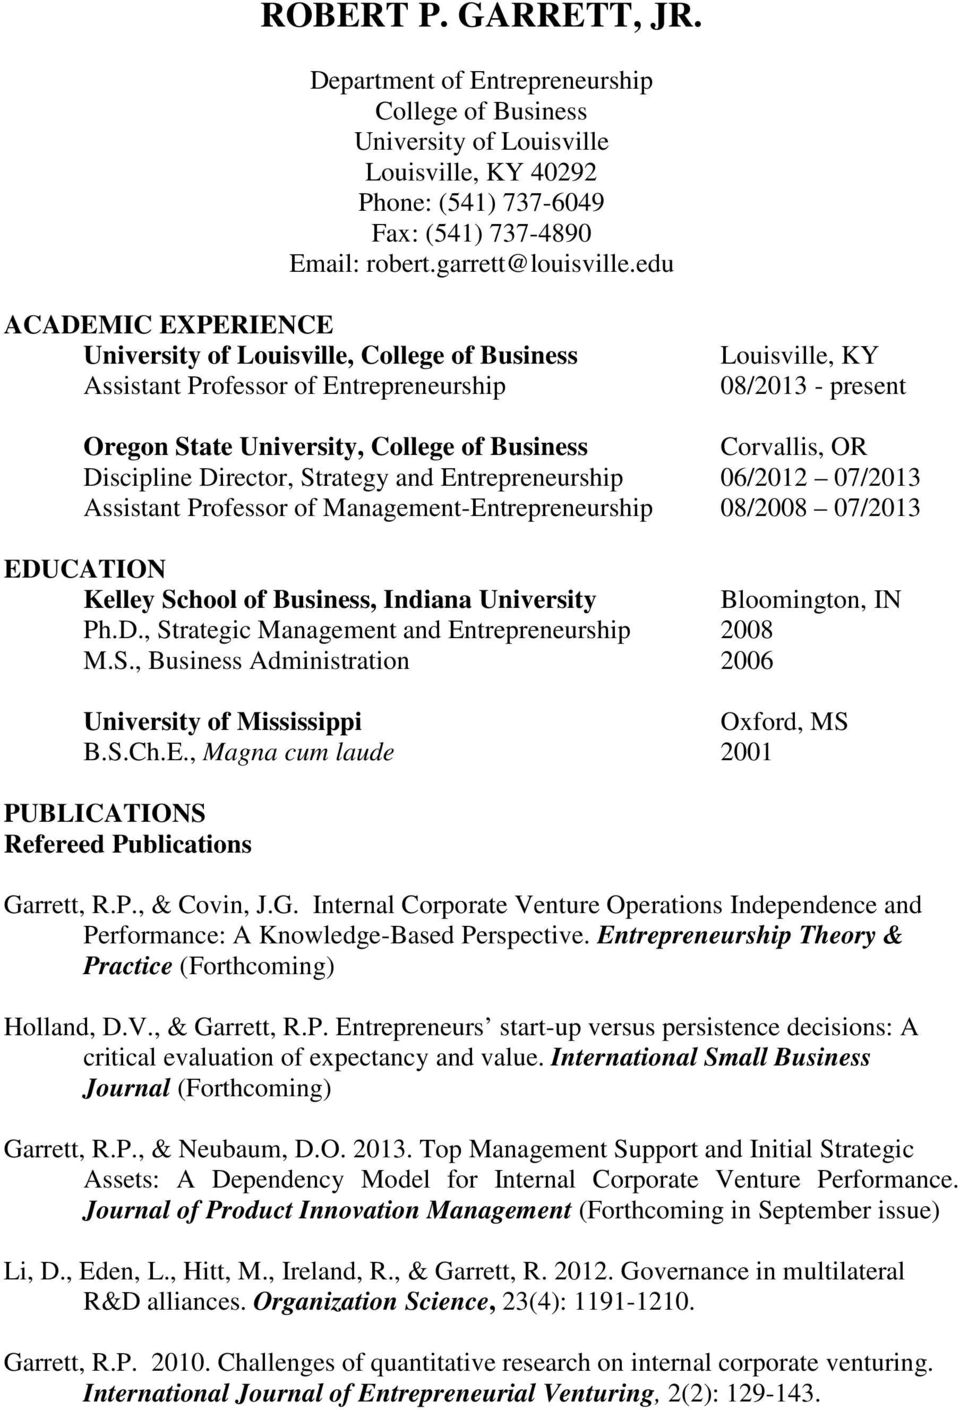 OR Discipline Director, Strategy and Entrepreneurship 06/2012 07/2013 Assistant Professor of Management-Entrepreneurship 08/2008 07/2013 EDUCATION, Bloomington, IN Ph.D., Strategic Management and Entrepreneurship 2008 M.